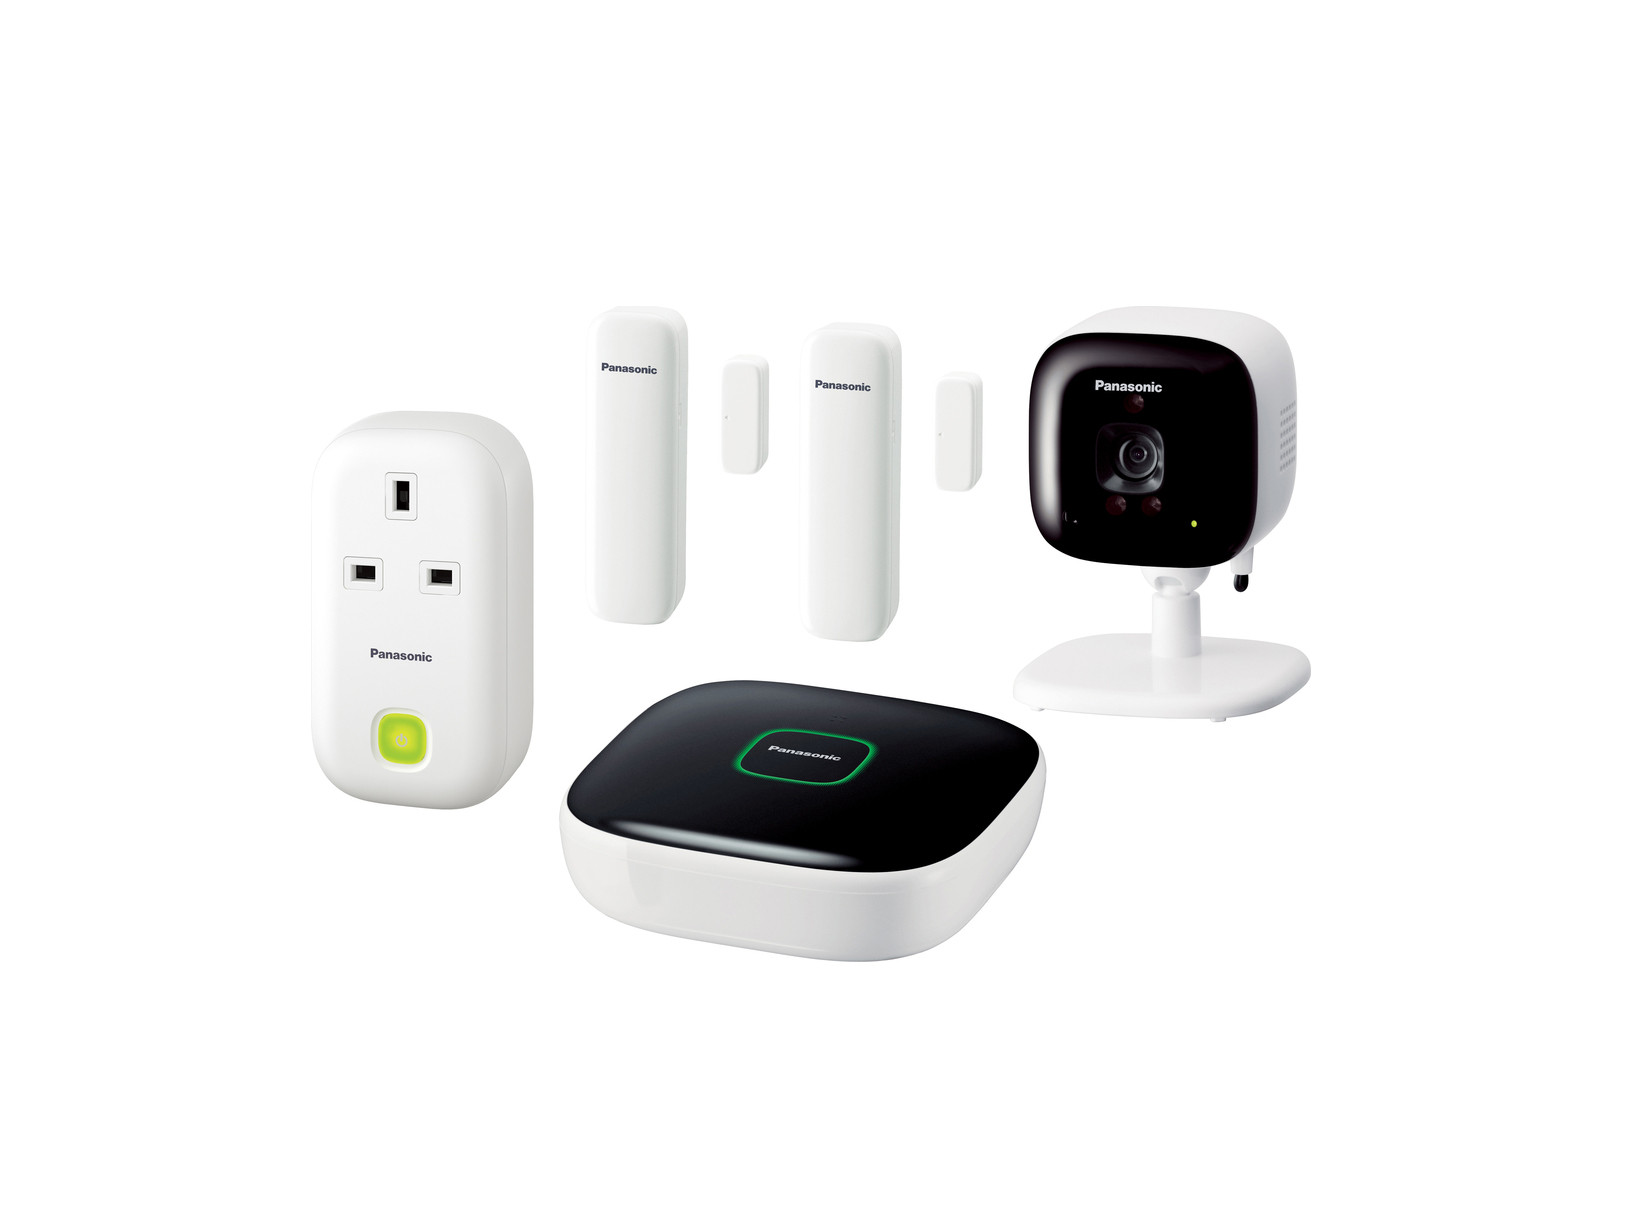 panasonic home control kit review